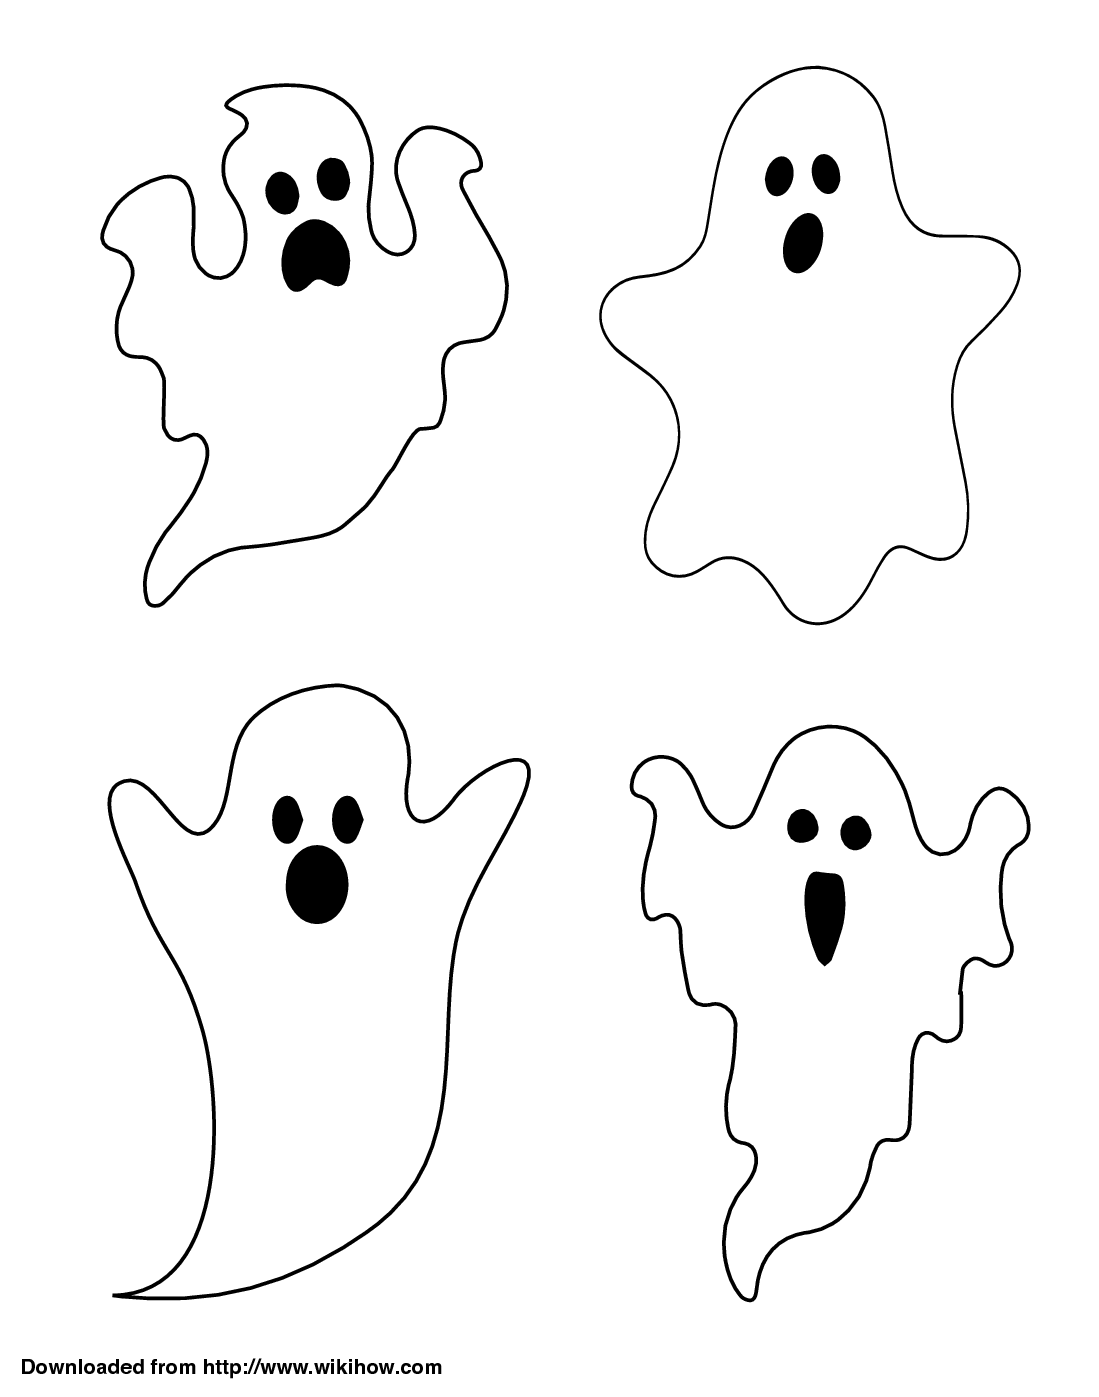 drawings of halloween stuff halloween images gif 3d wallpapers clipart photos drawings of stuff halloween